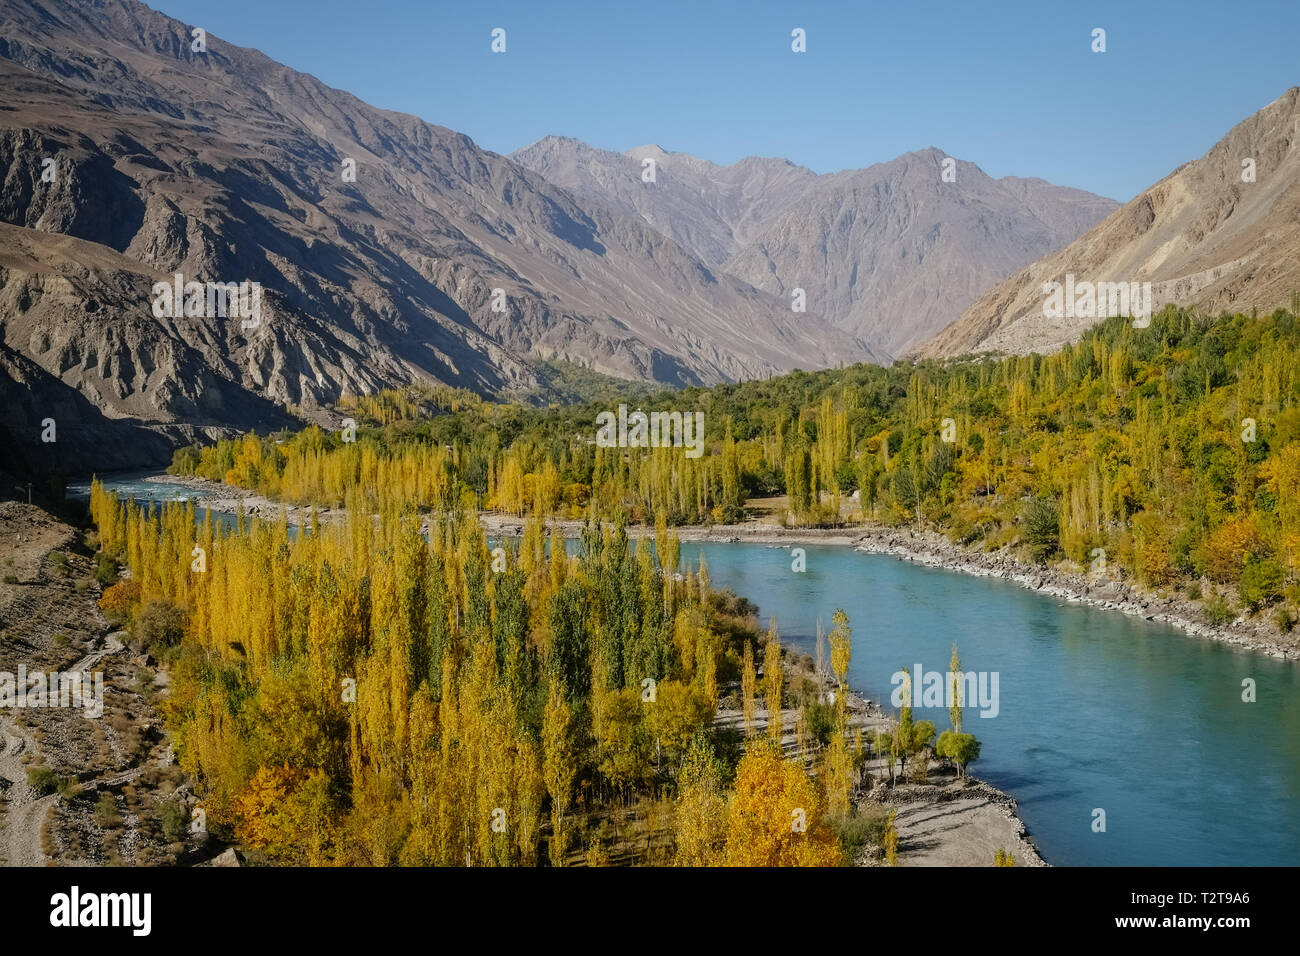 Autumn view of Ghizer river flowing through forest in Gahkuch, surrounded by mountains. Gilgit Baltistan, Pakistan. - Stock Image